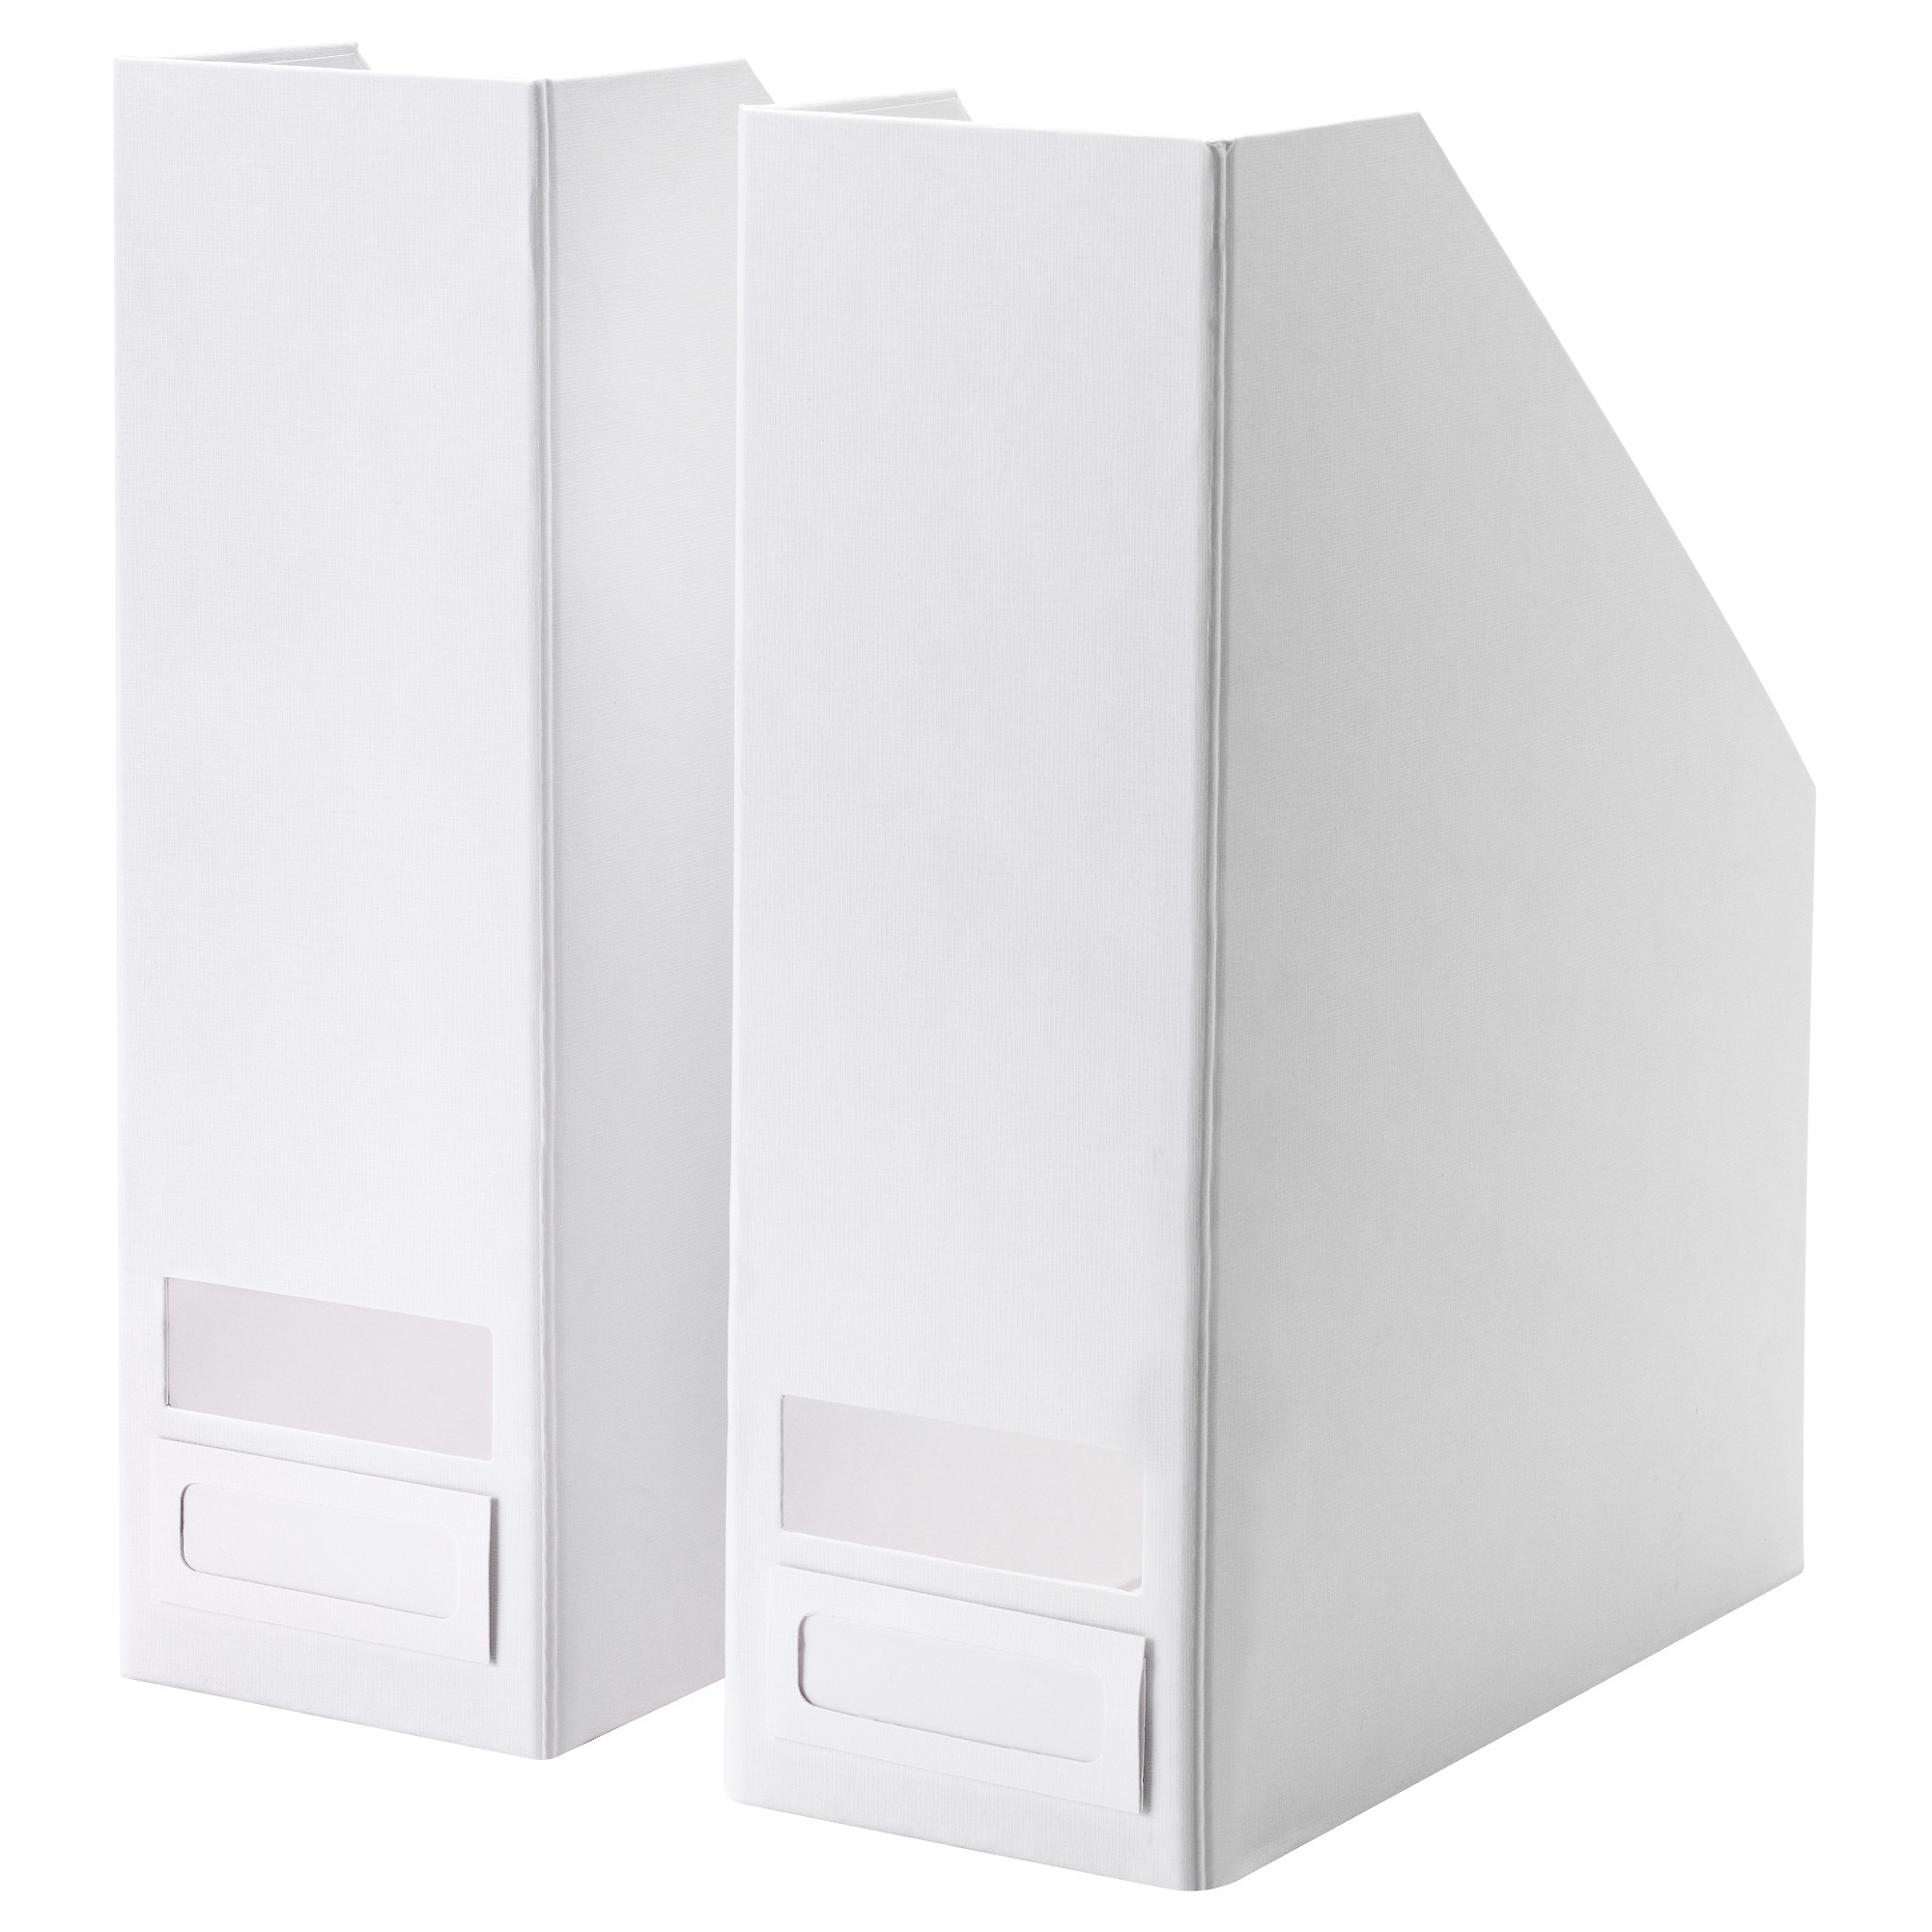 Porte journaux mural ikea oxo support de livre with porte for Porte revue mural ikea